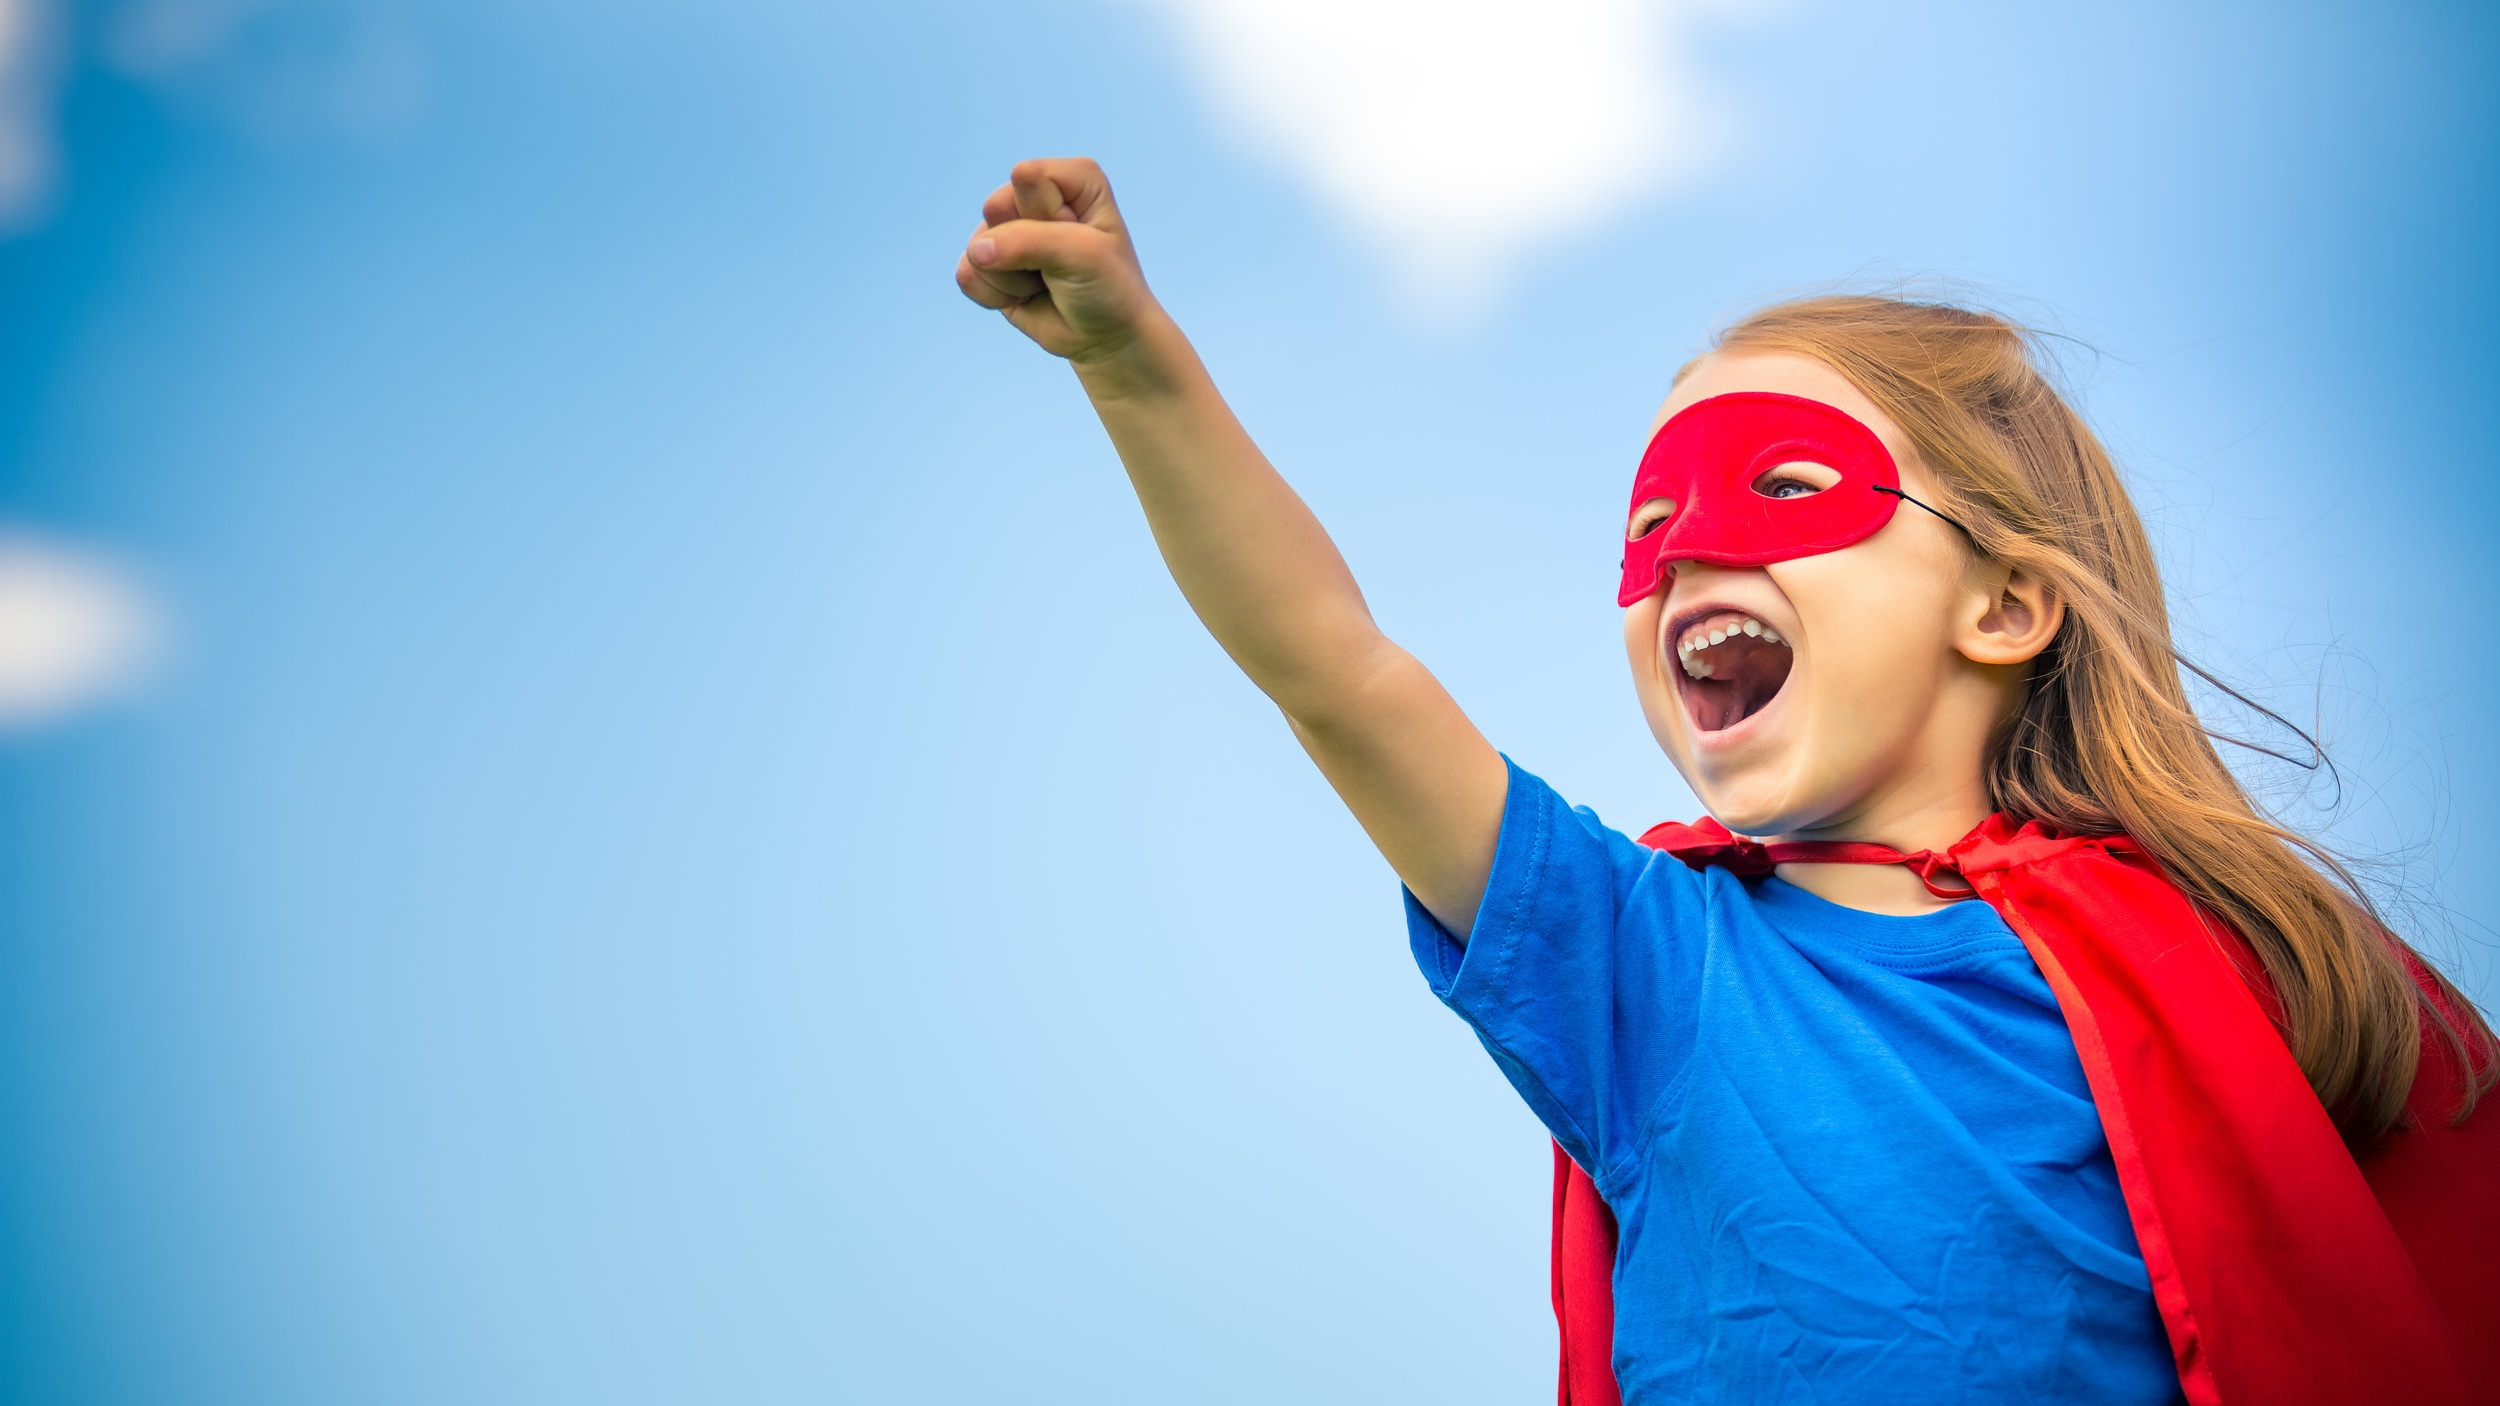 super hero WEEK - JULY 29 - AUG 1HALF DAY CAMPPre-K & Kids Camps